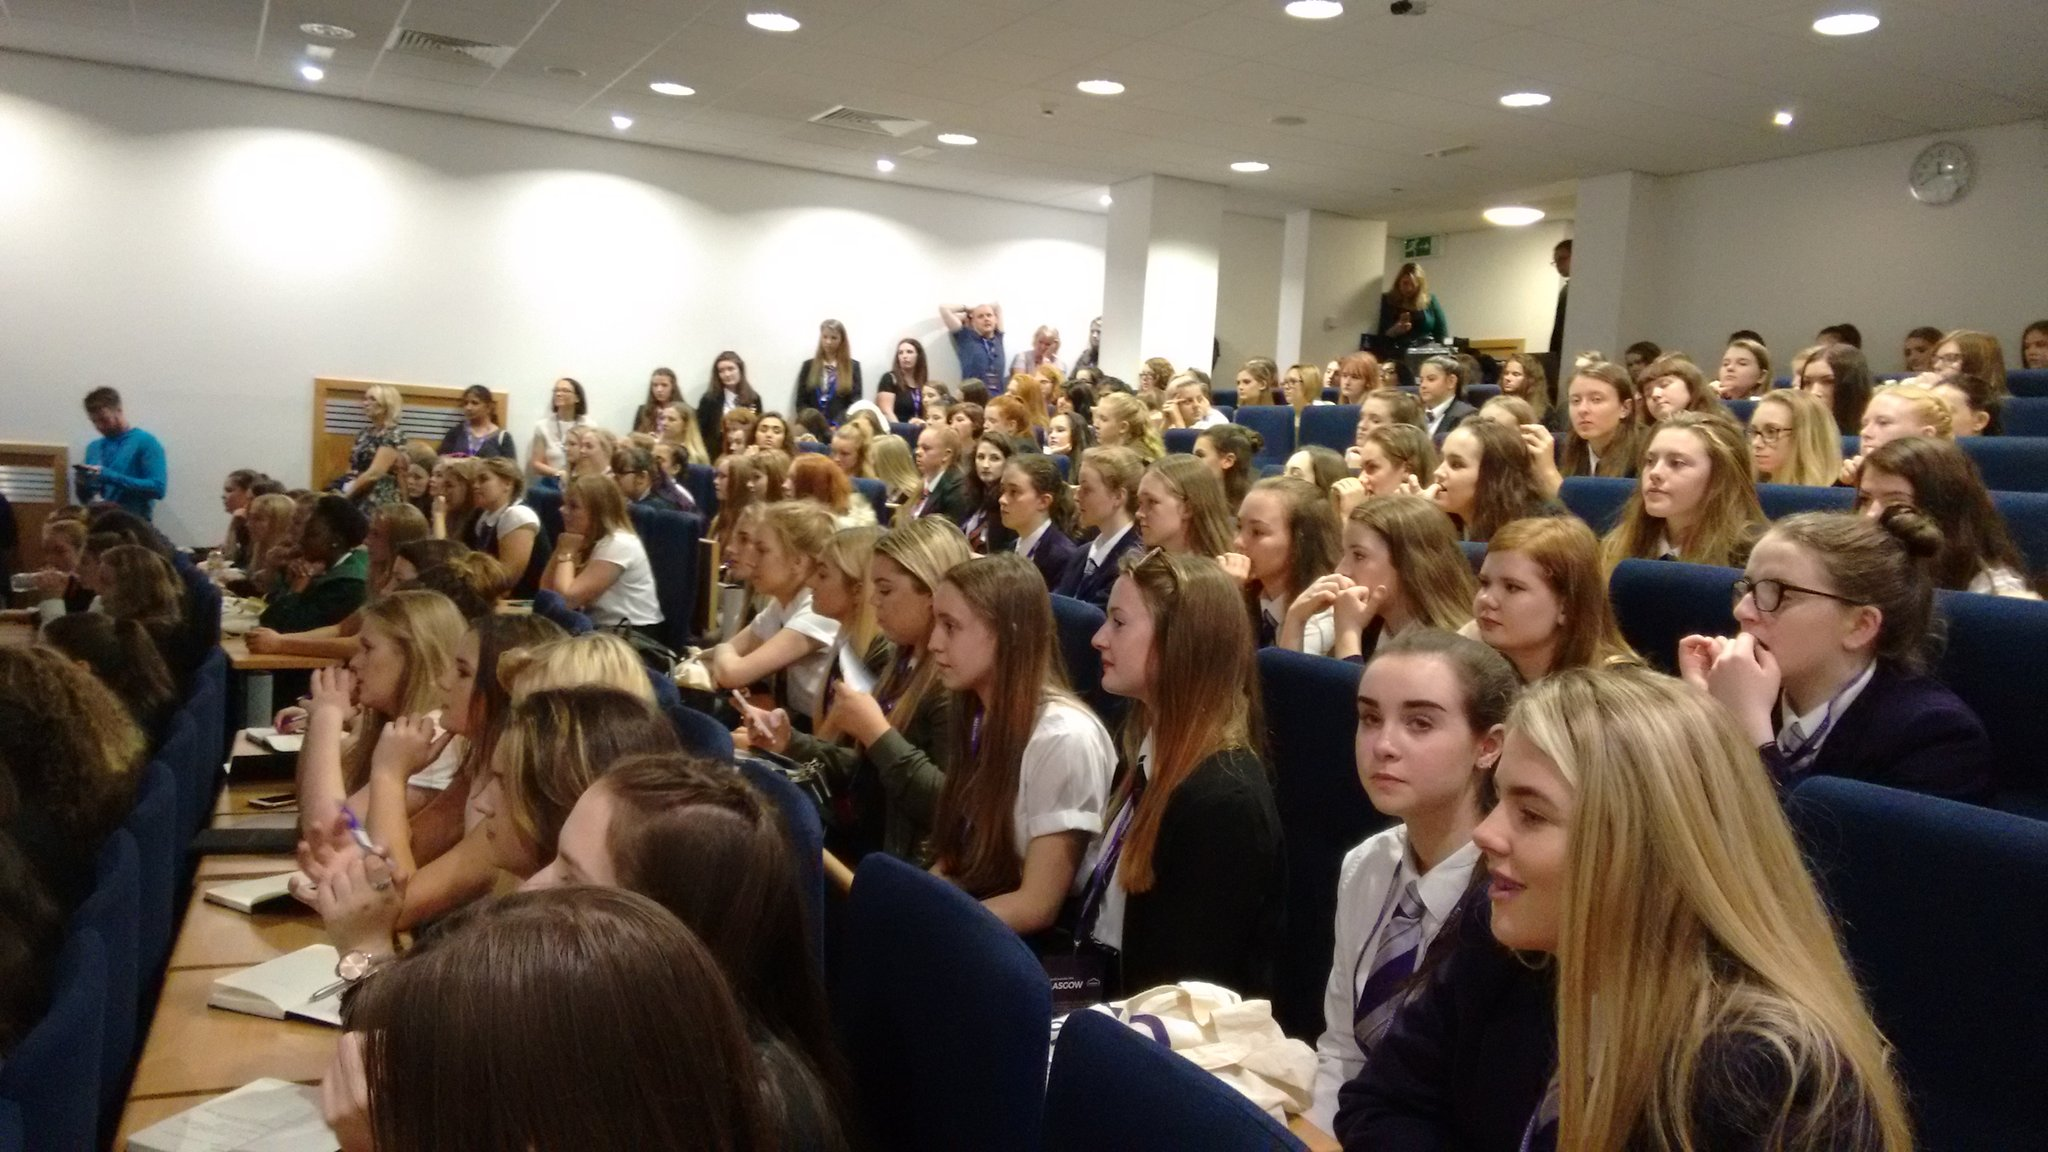 Huuuuuge audience for our morning session! #MonsterConfidence @UofGEngineering https://t.co/mESmQoVUOZ